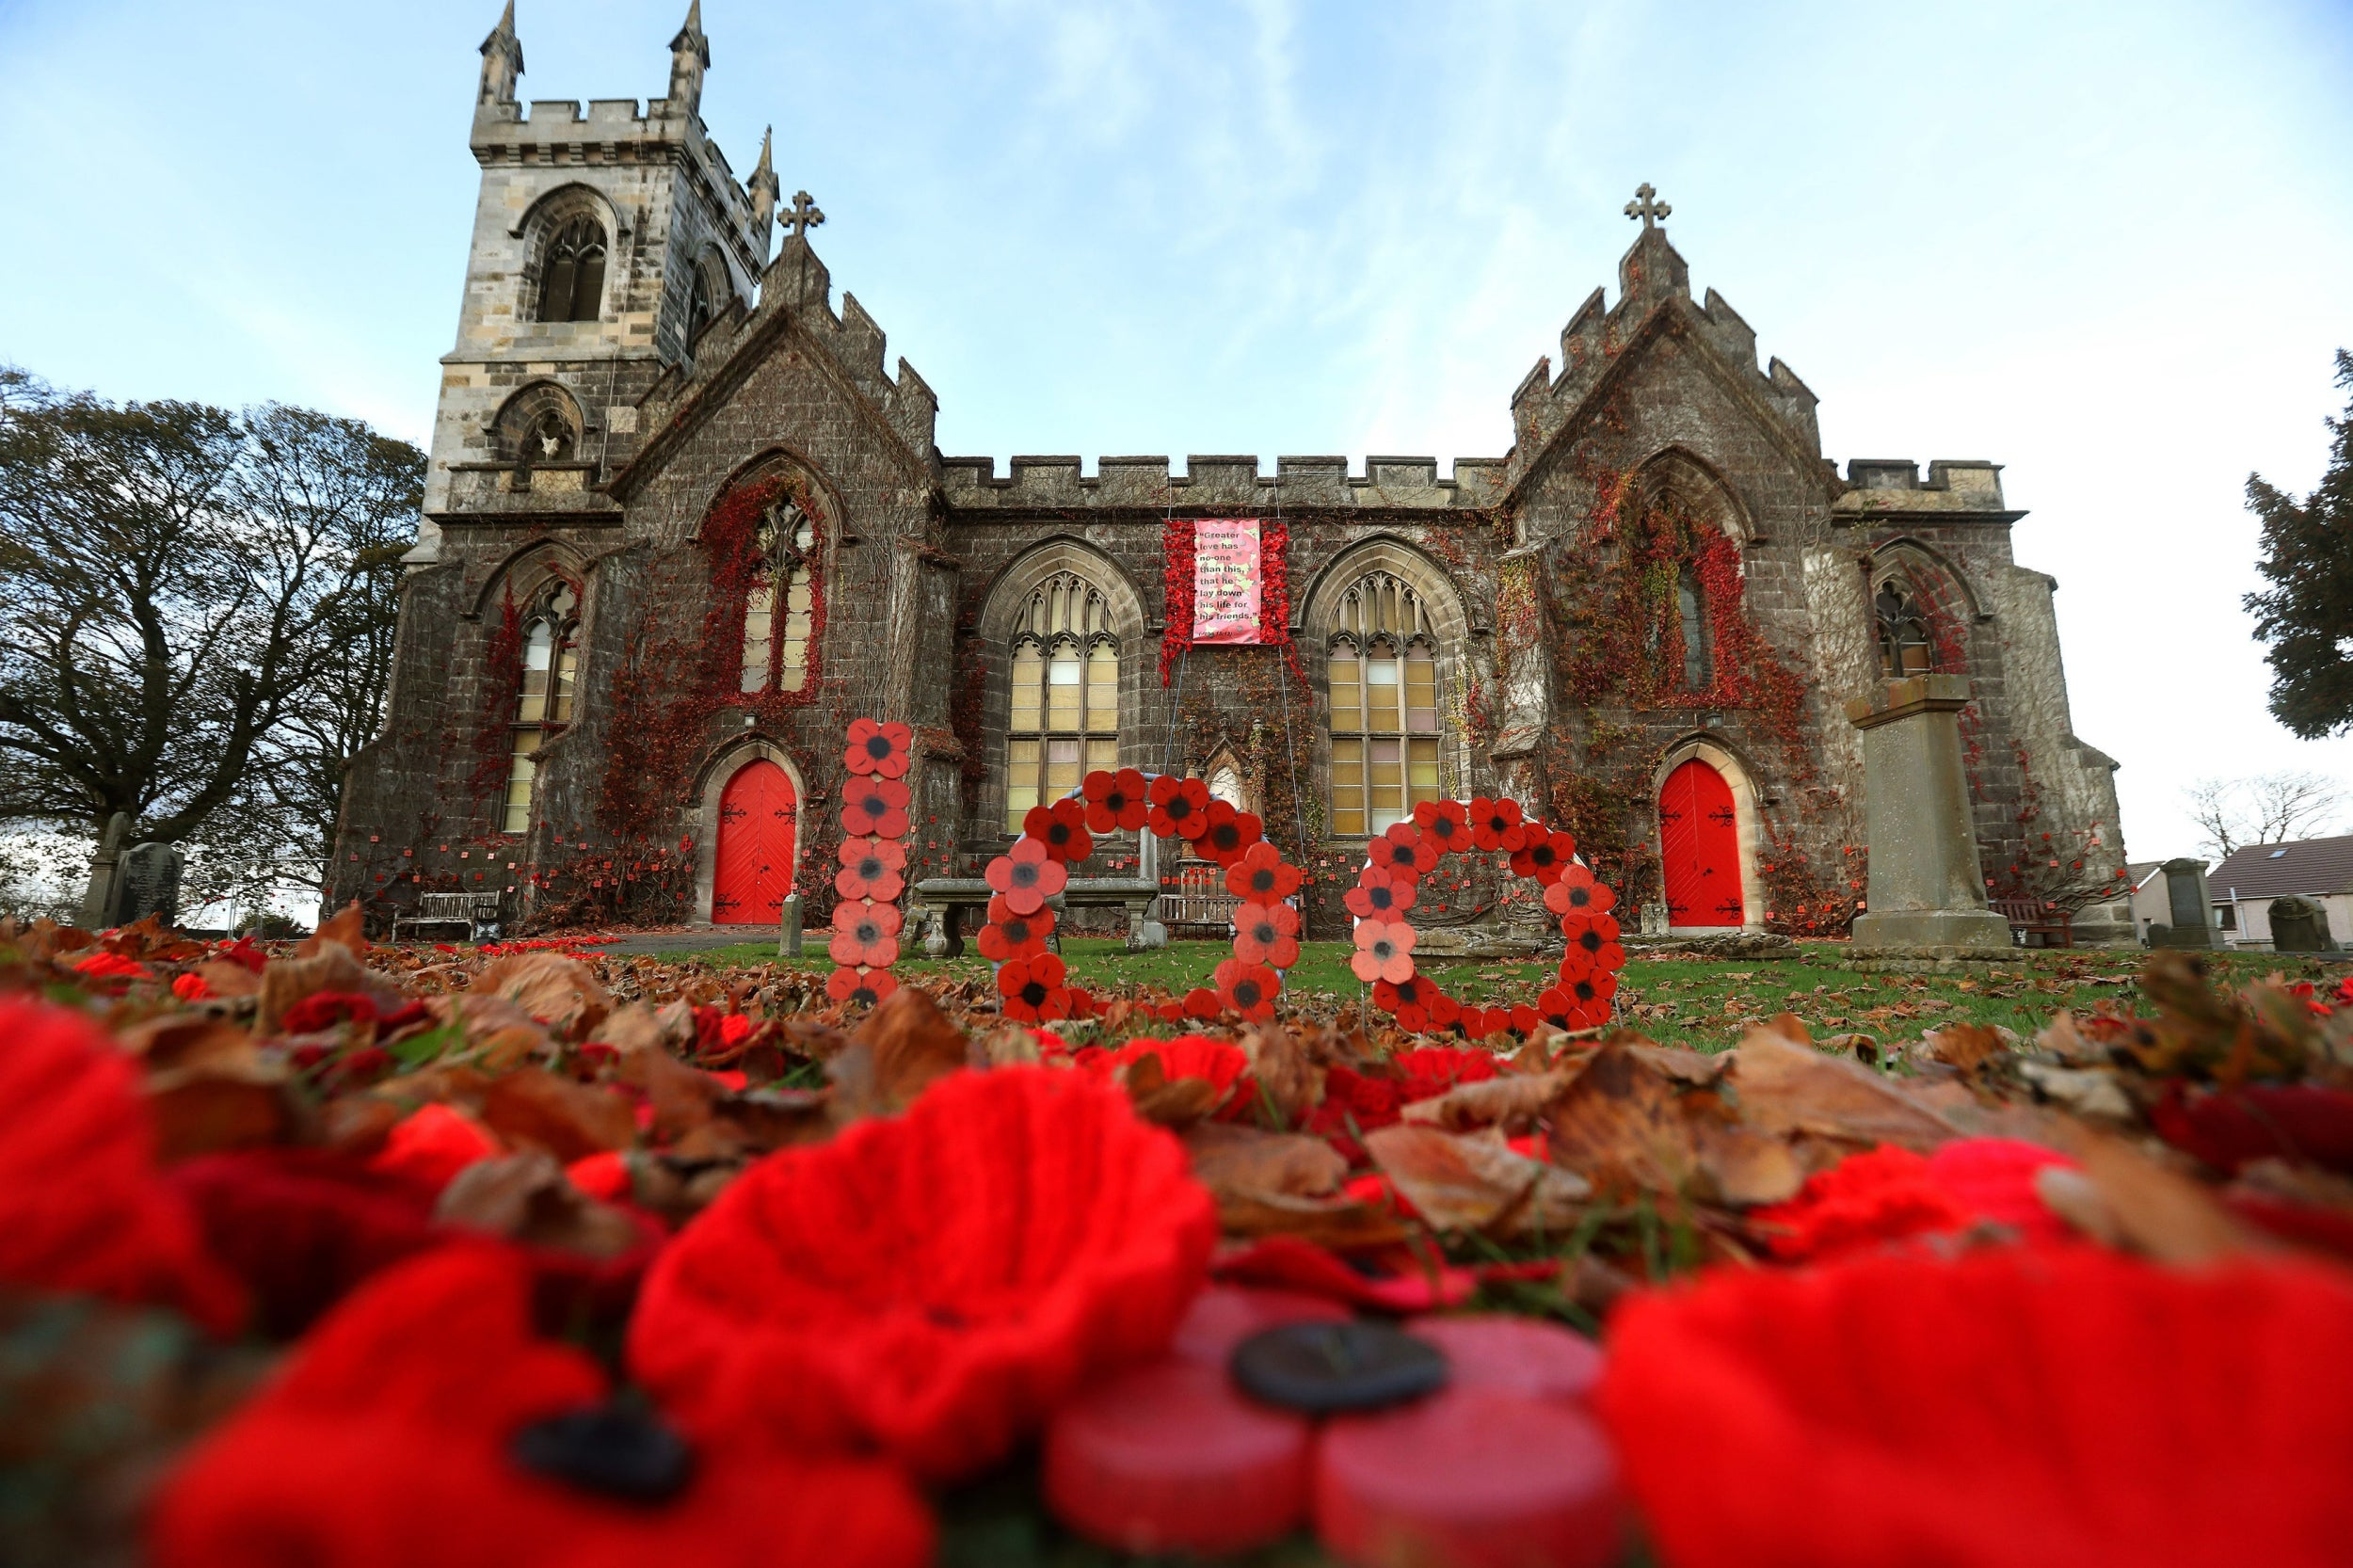 Remembrance Day Why Do We Wear Red Poppies In Tribute To Fallen